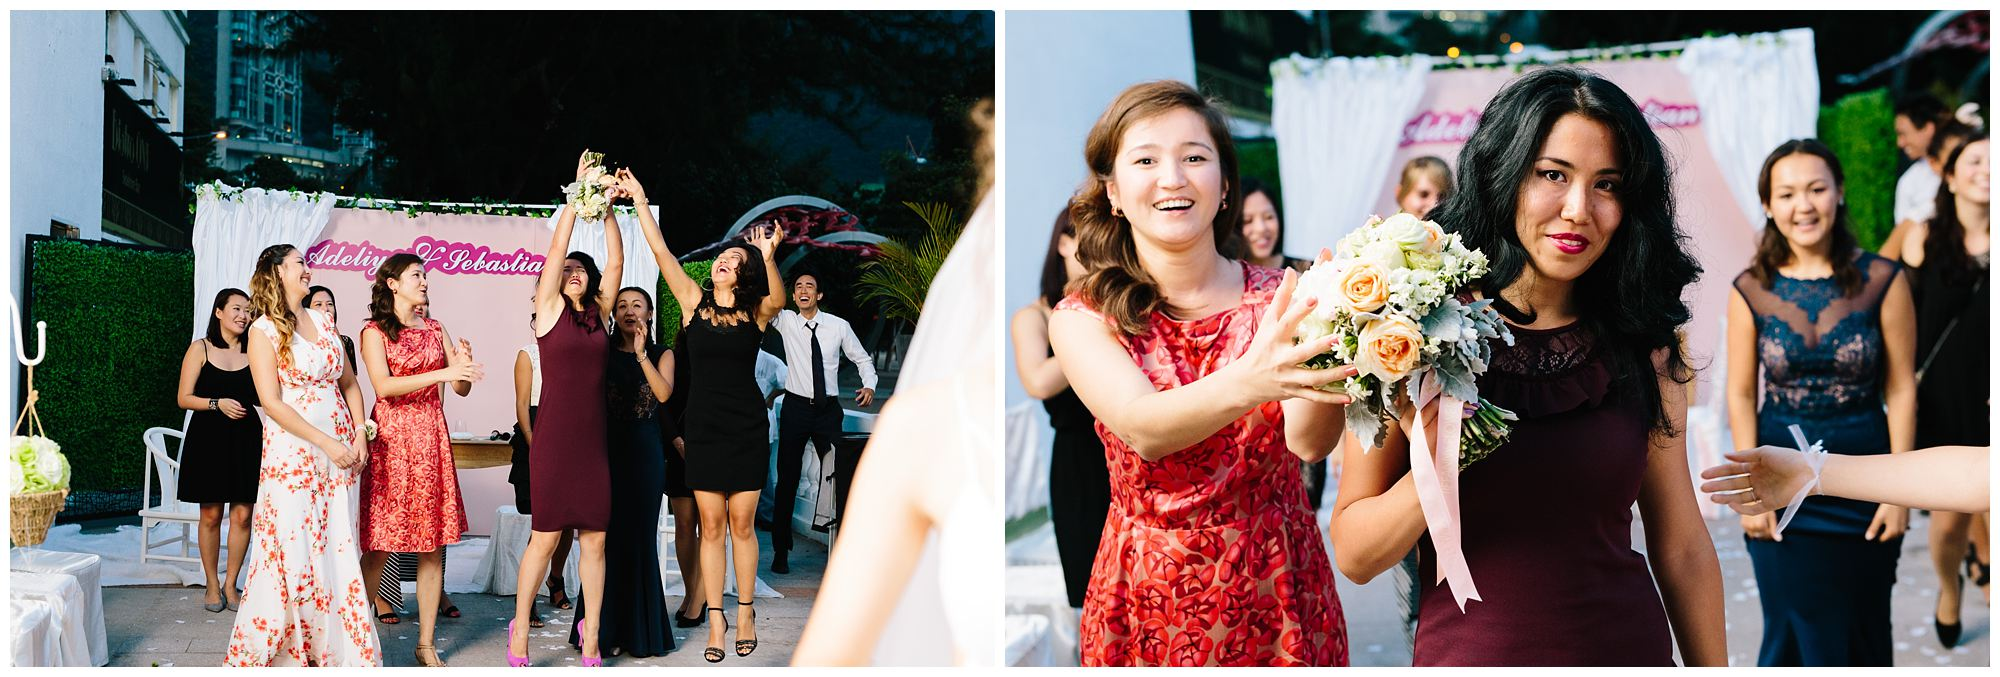 sa-wedding-hong-kong-183